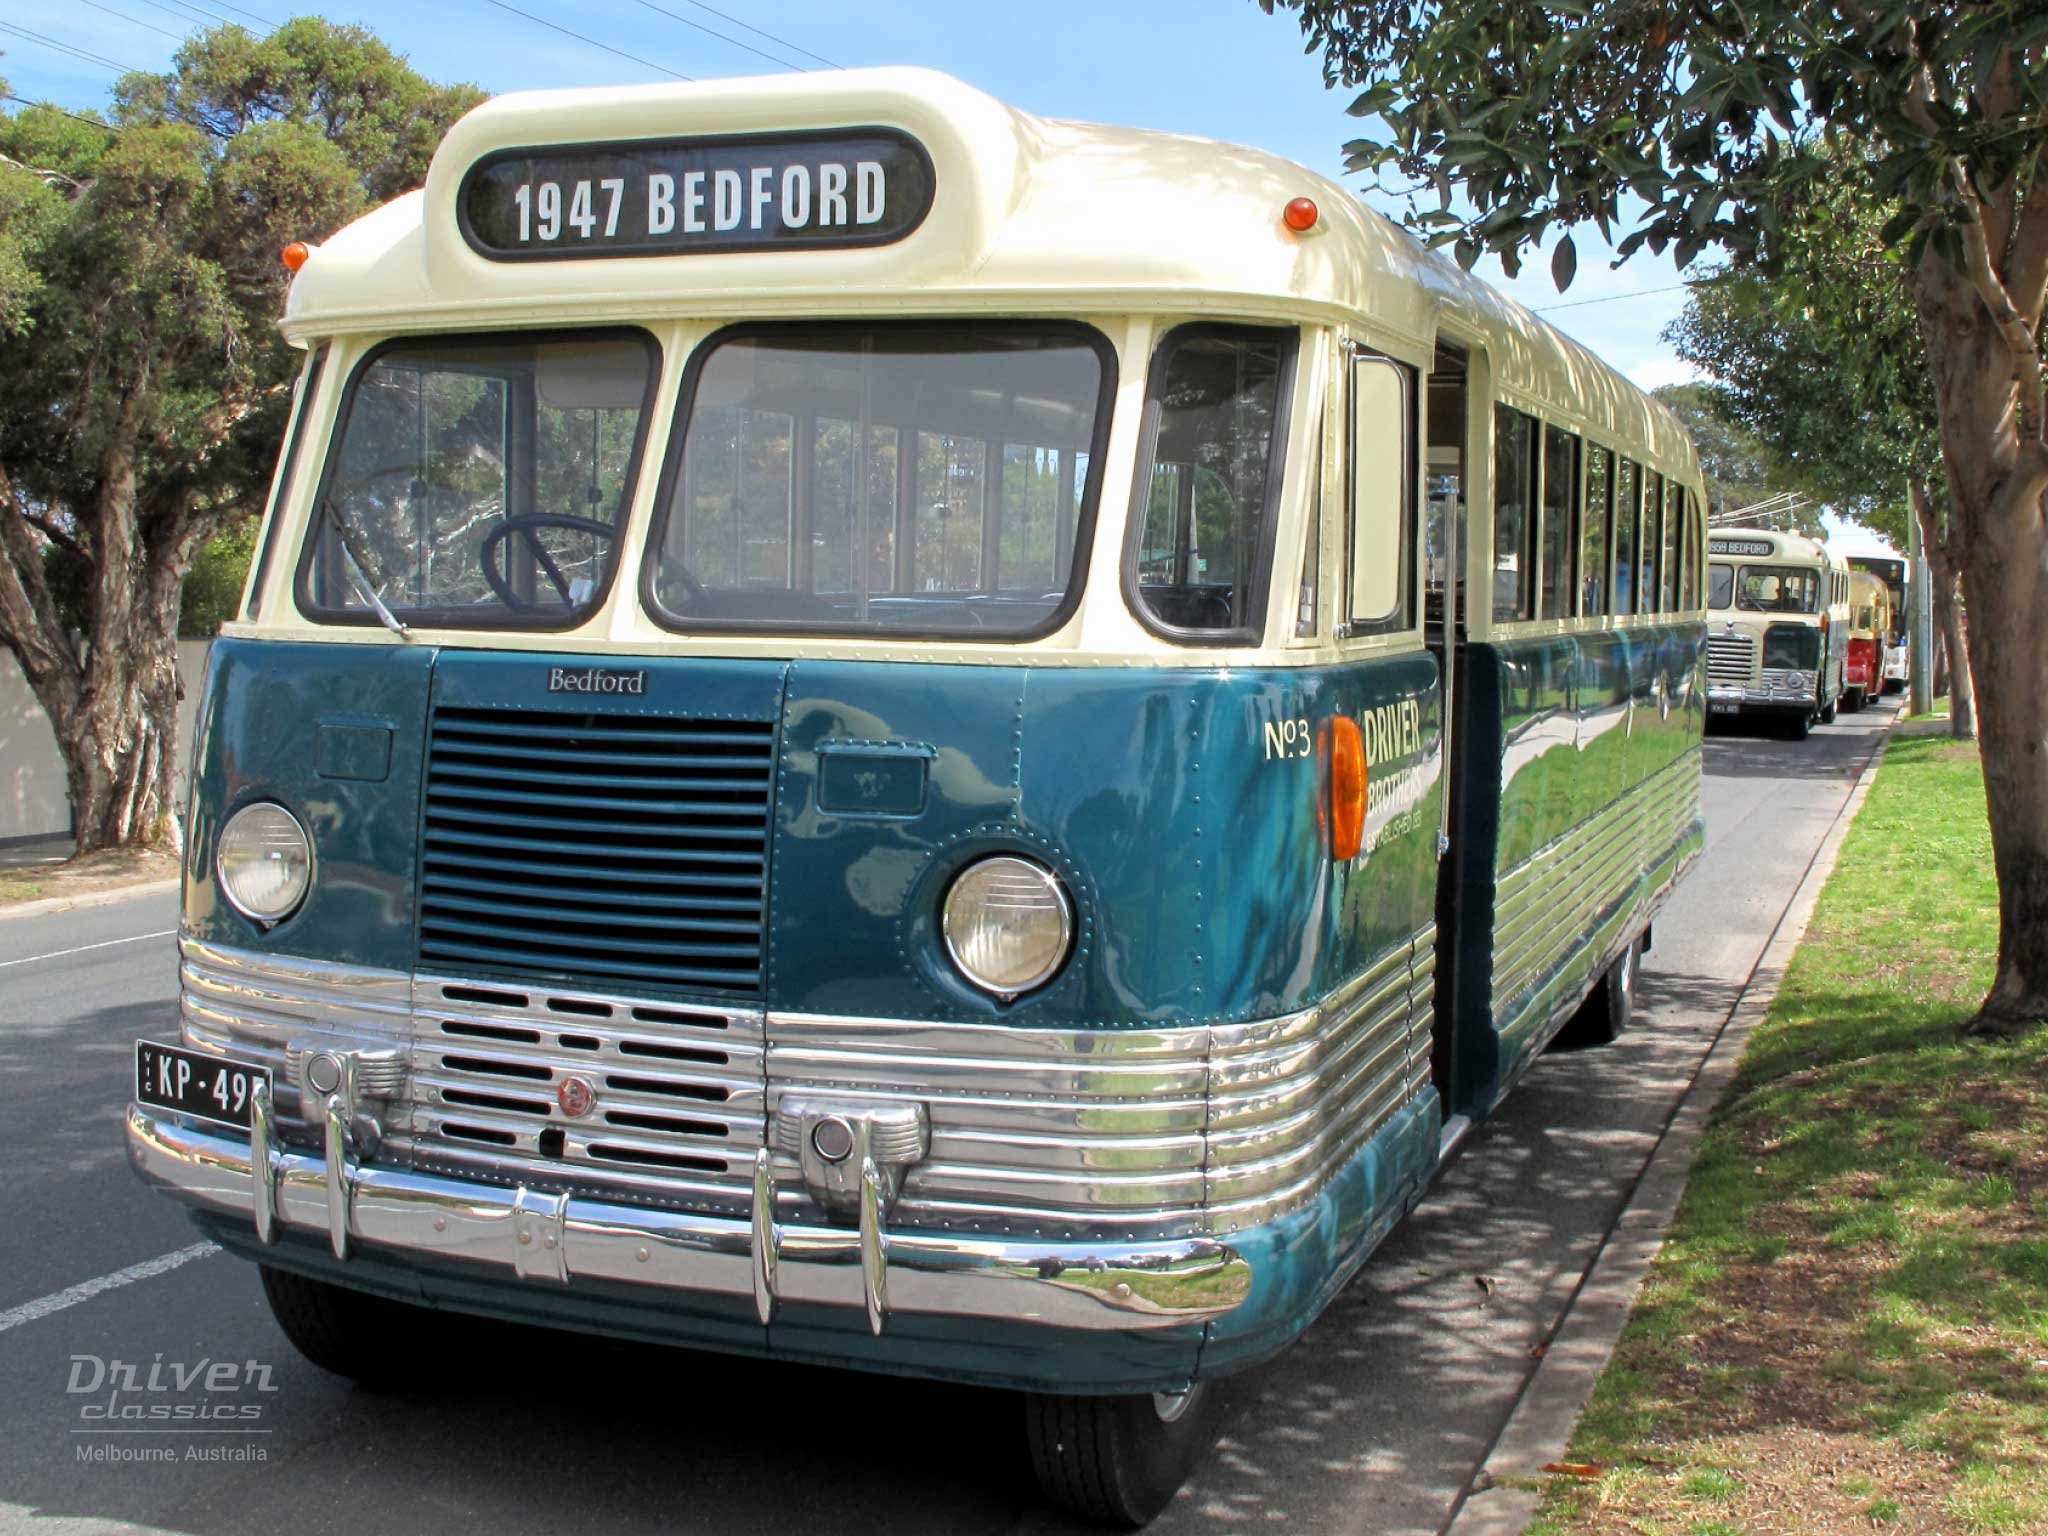 1947 Bedford OB bus. Photo taken September 2009